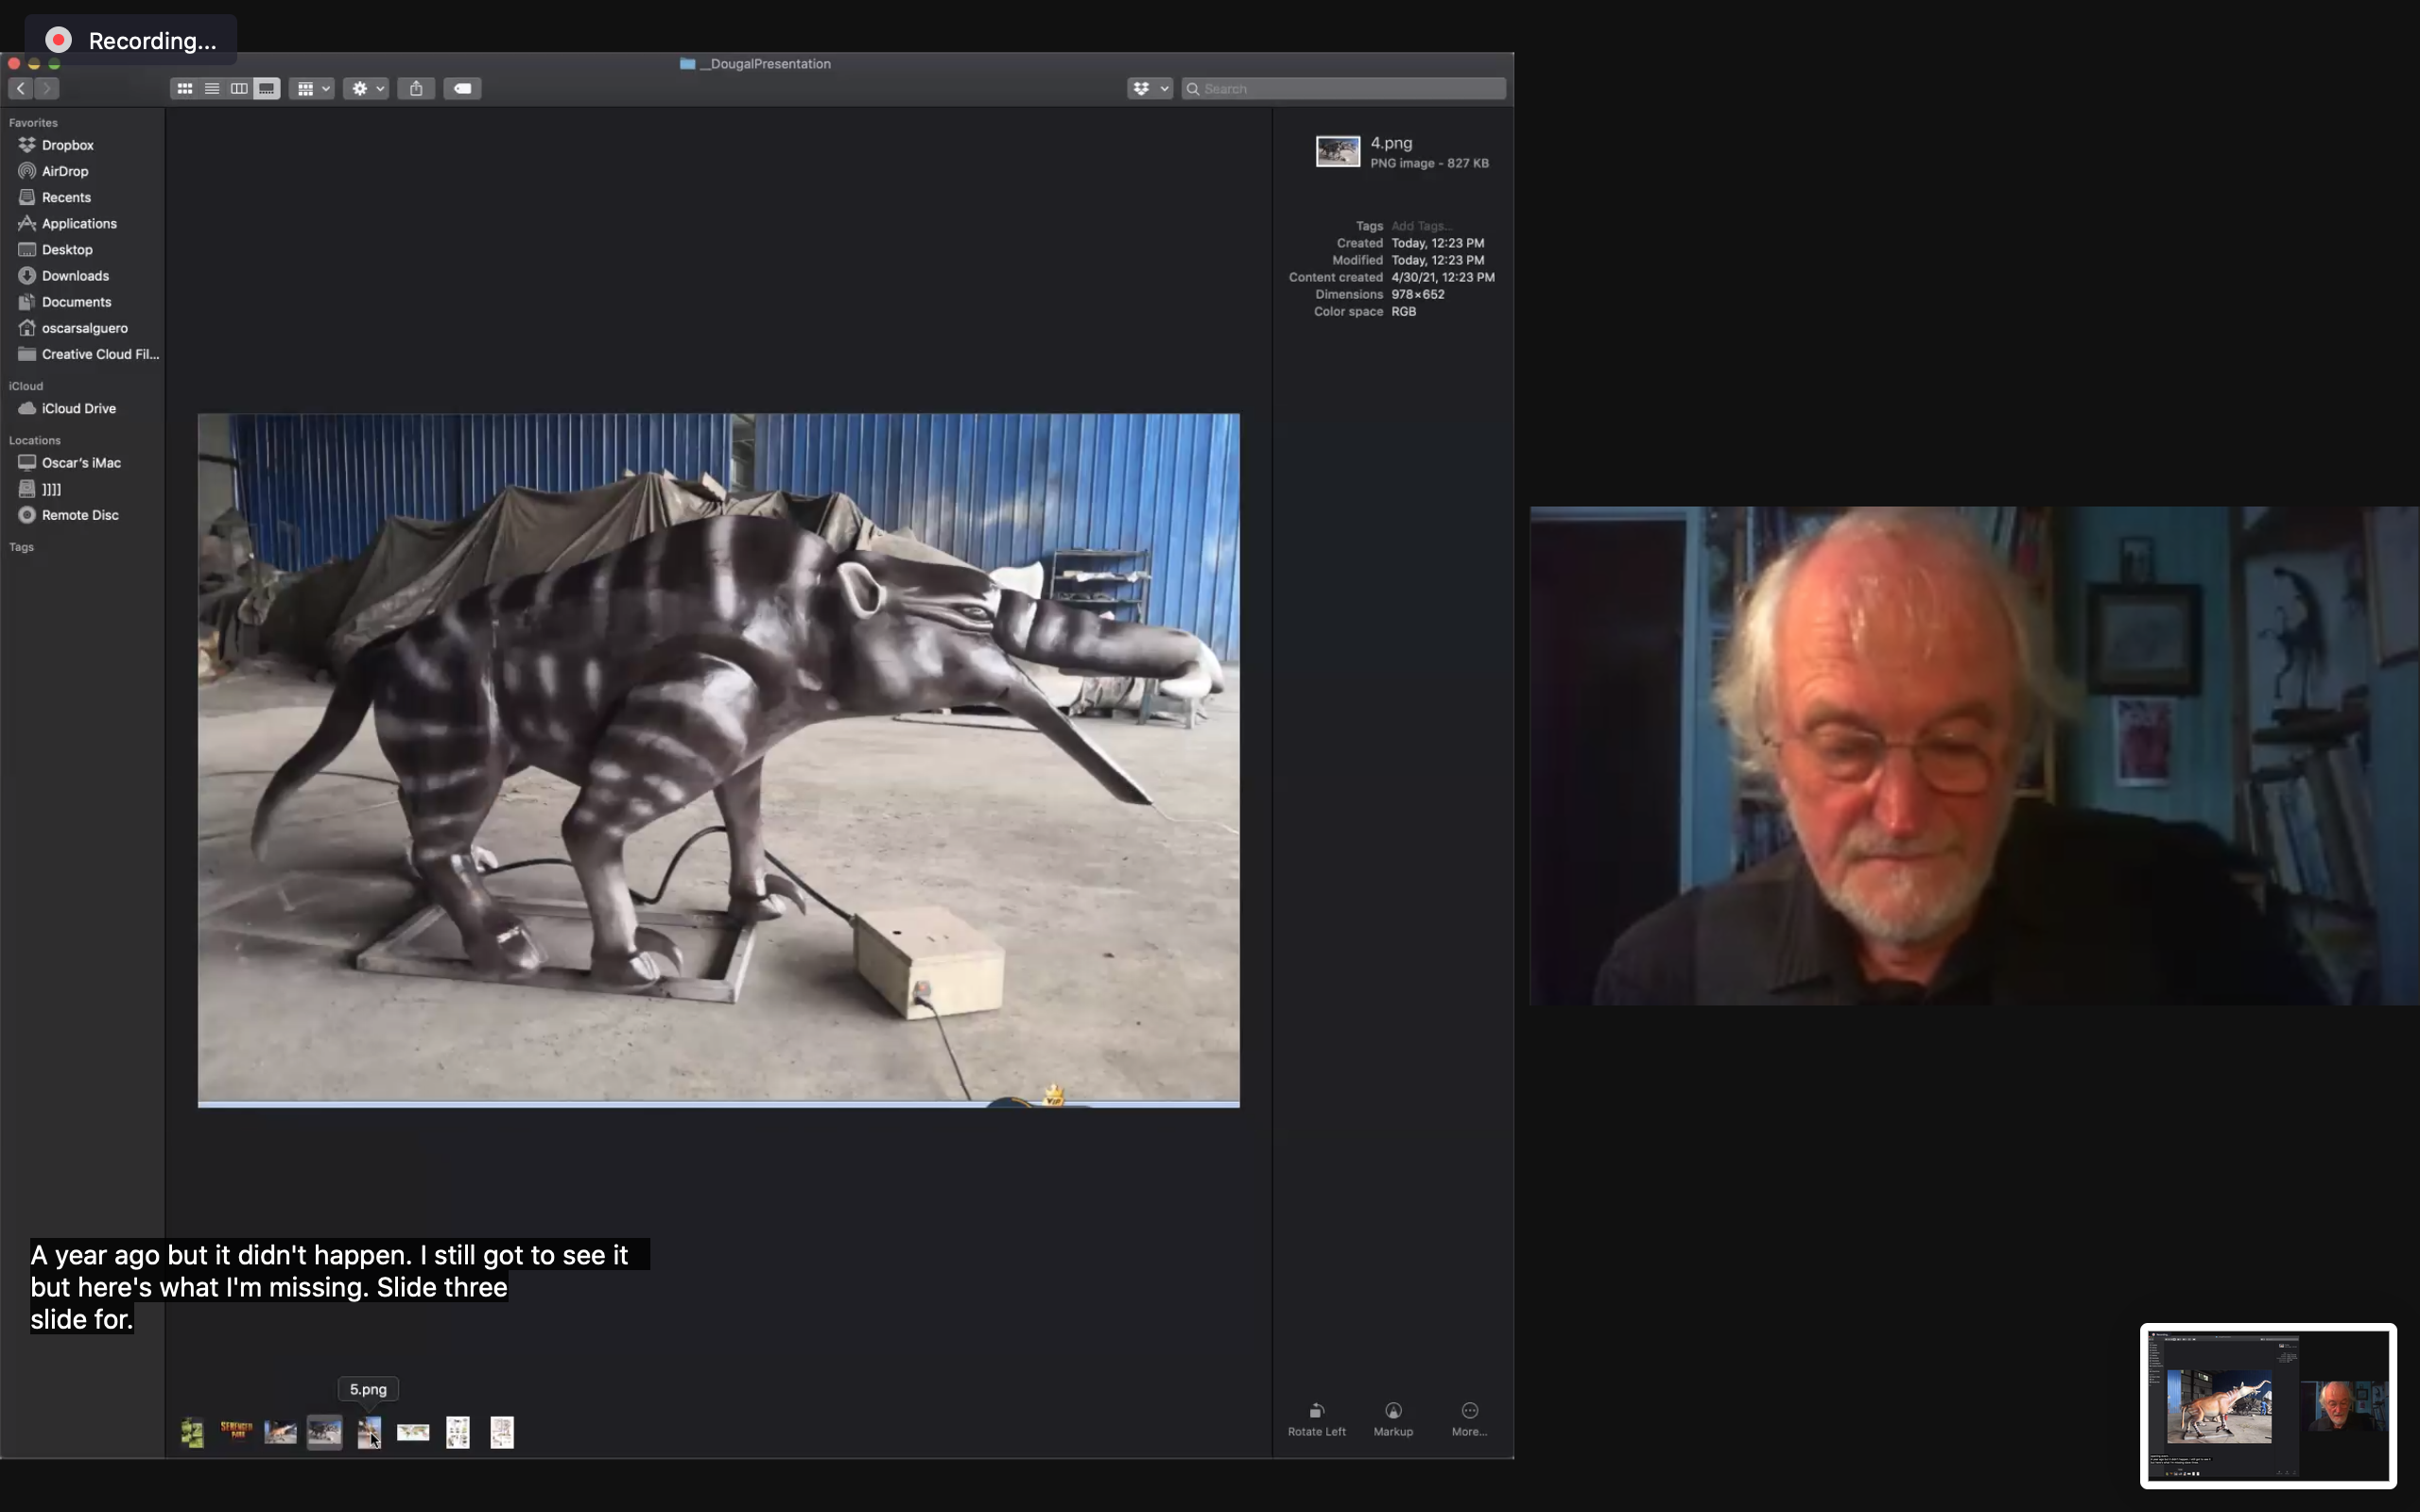 Screen Capture of Dougal Dixon and an image of a speculative species